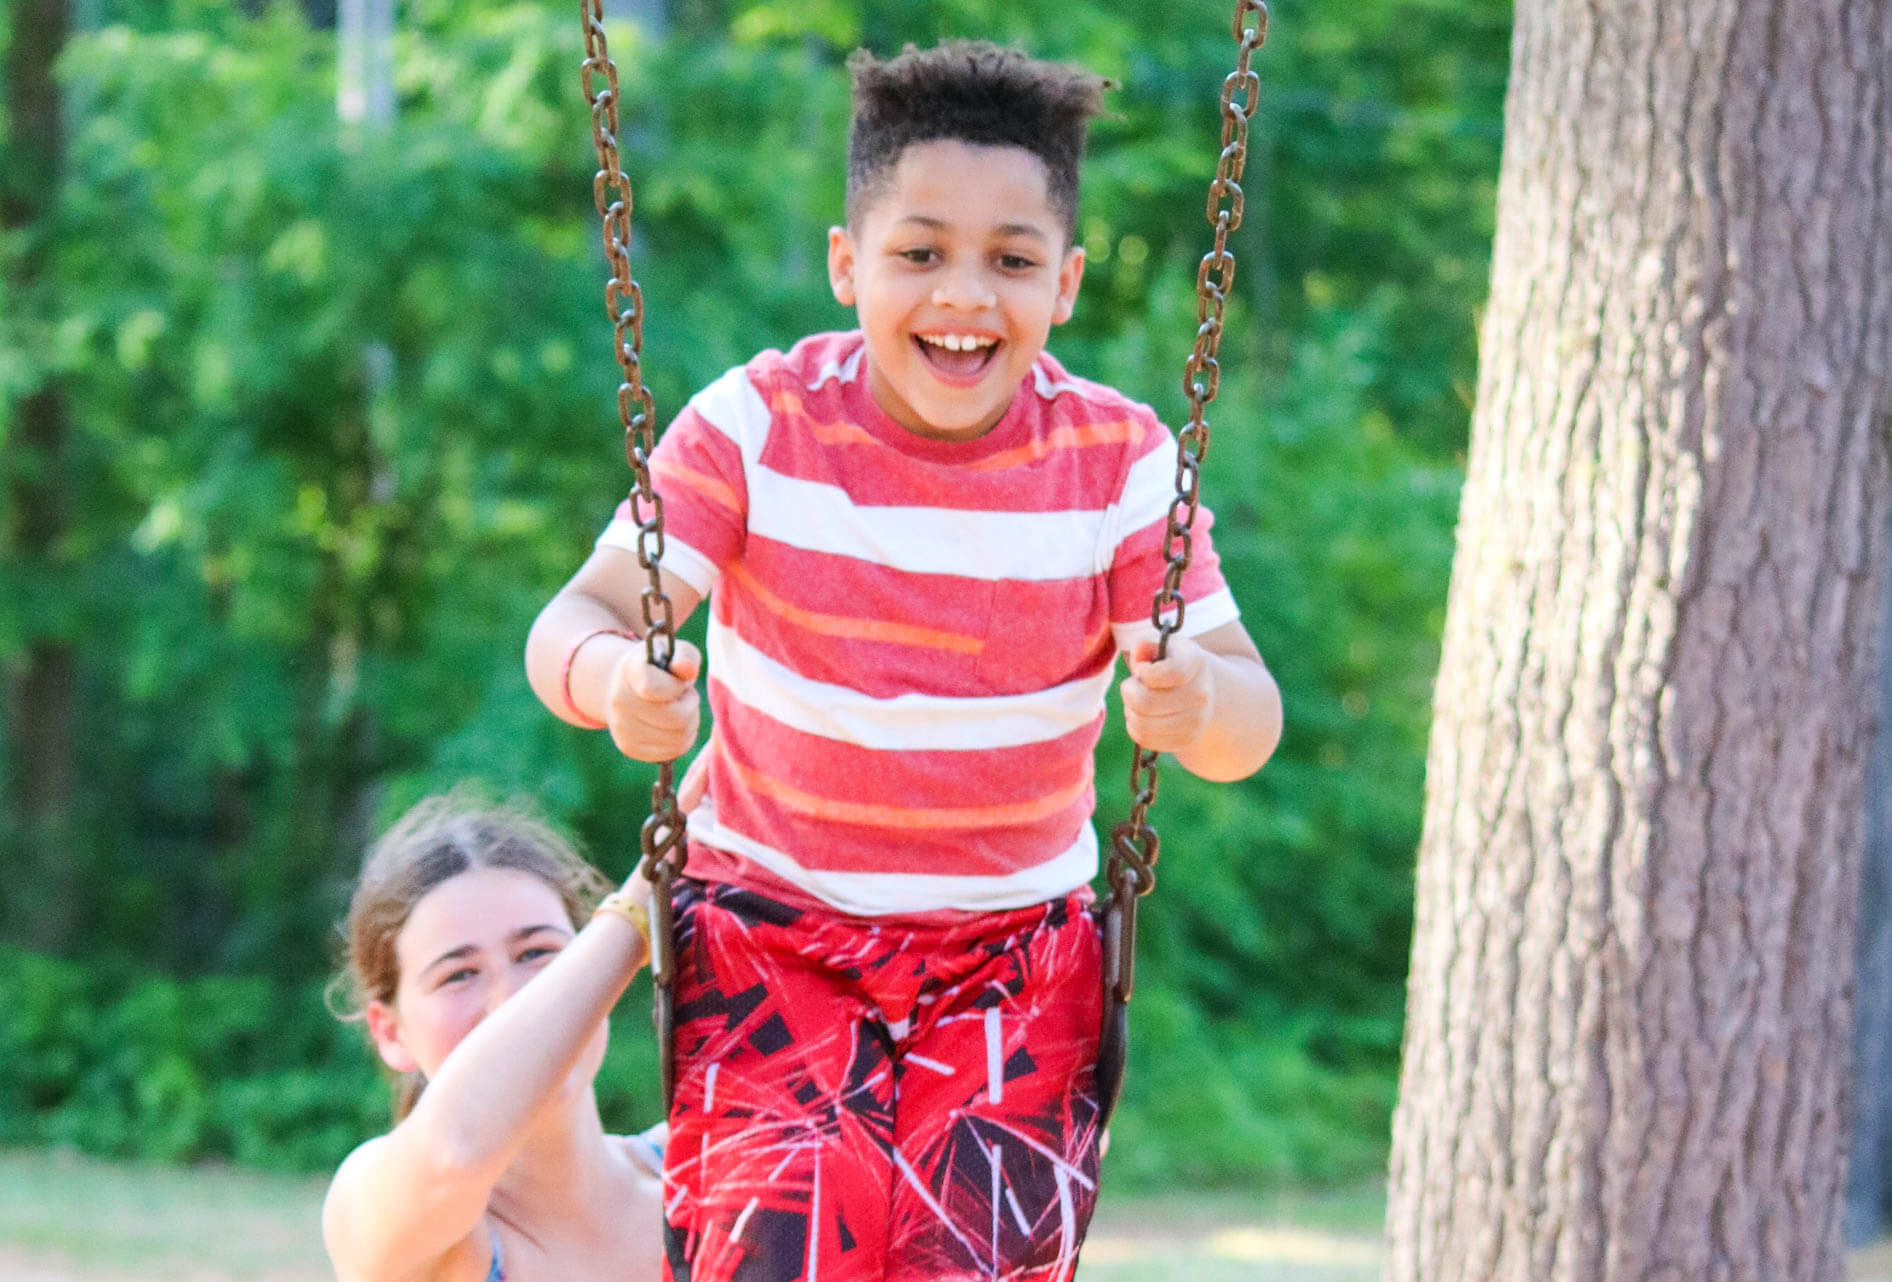 Counselor pushes young camper on swing